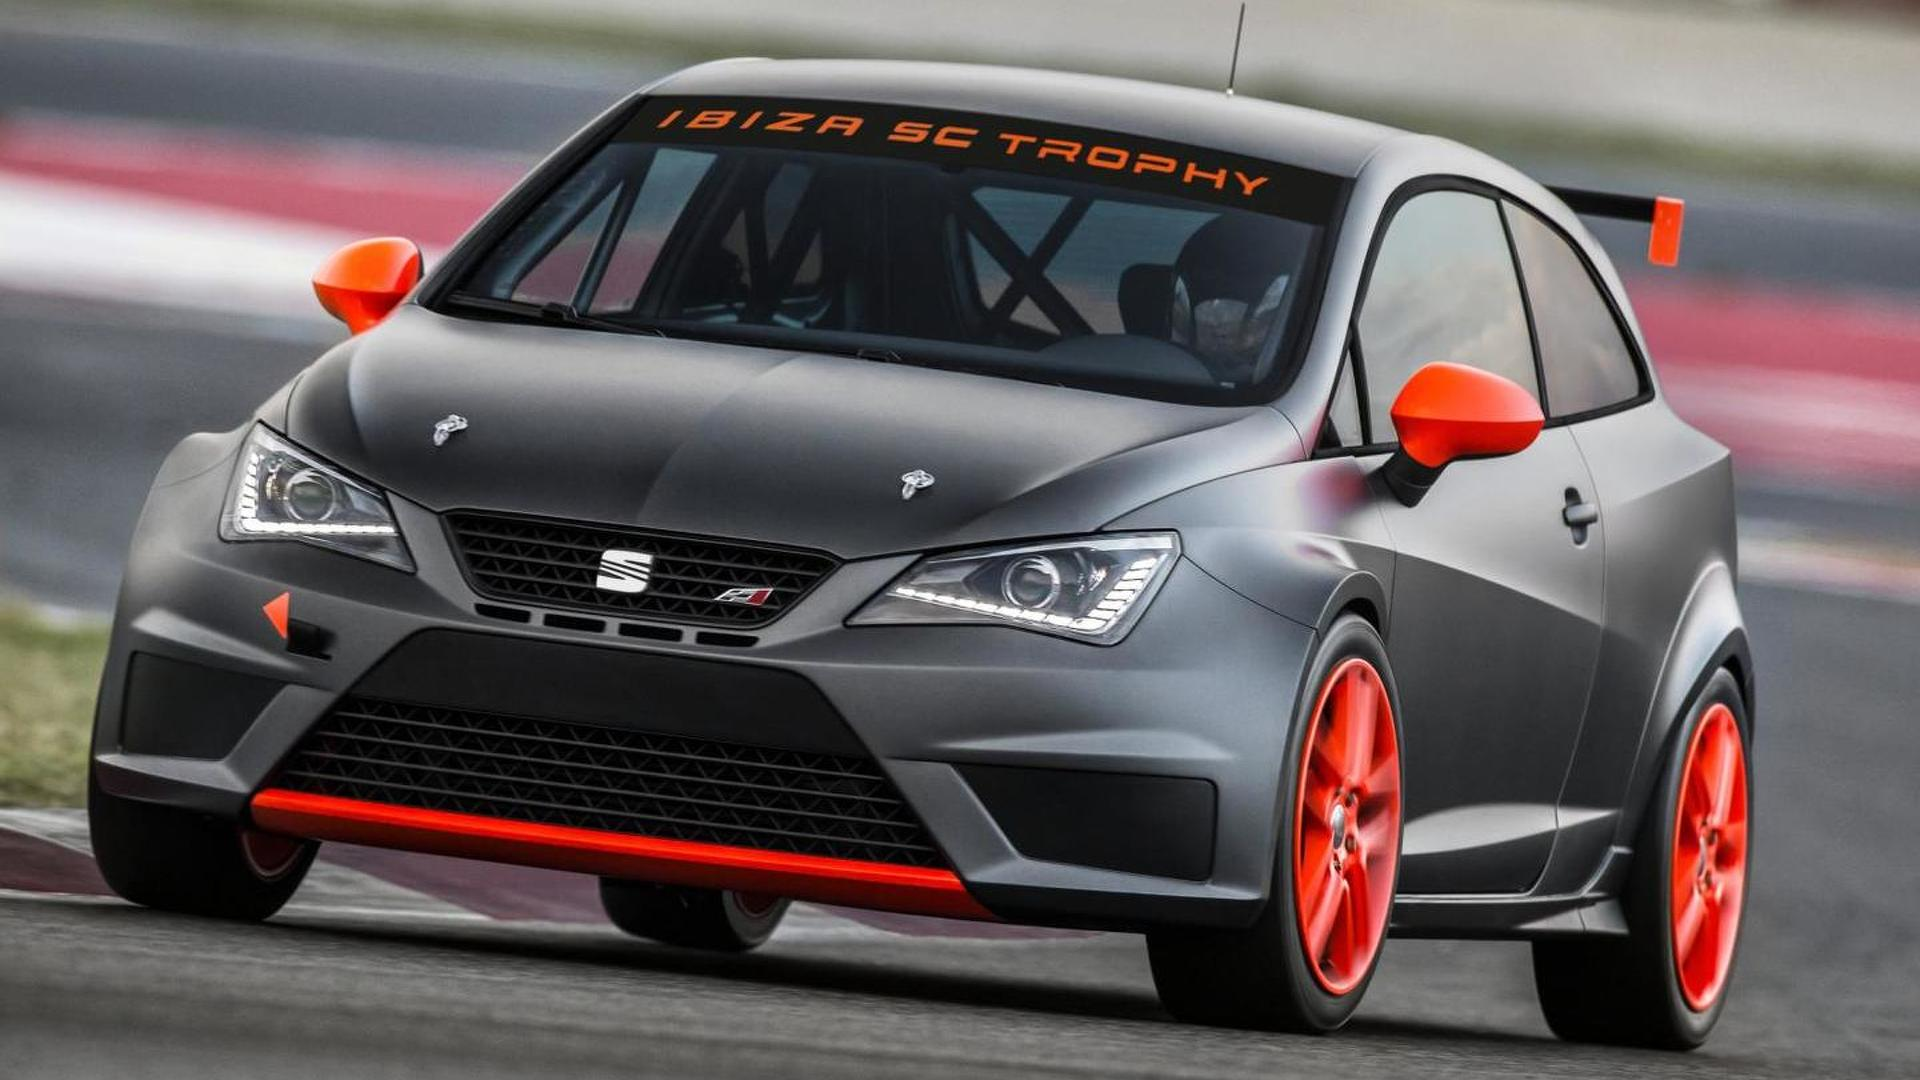 Seat Ibiza SC Trophy upgraded to 200 HP